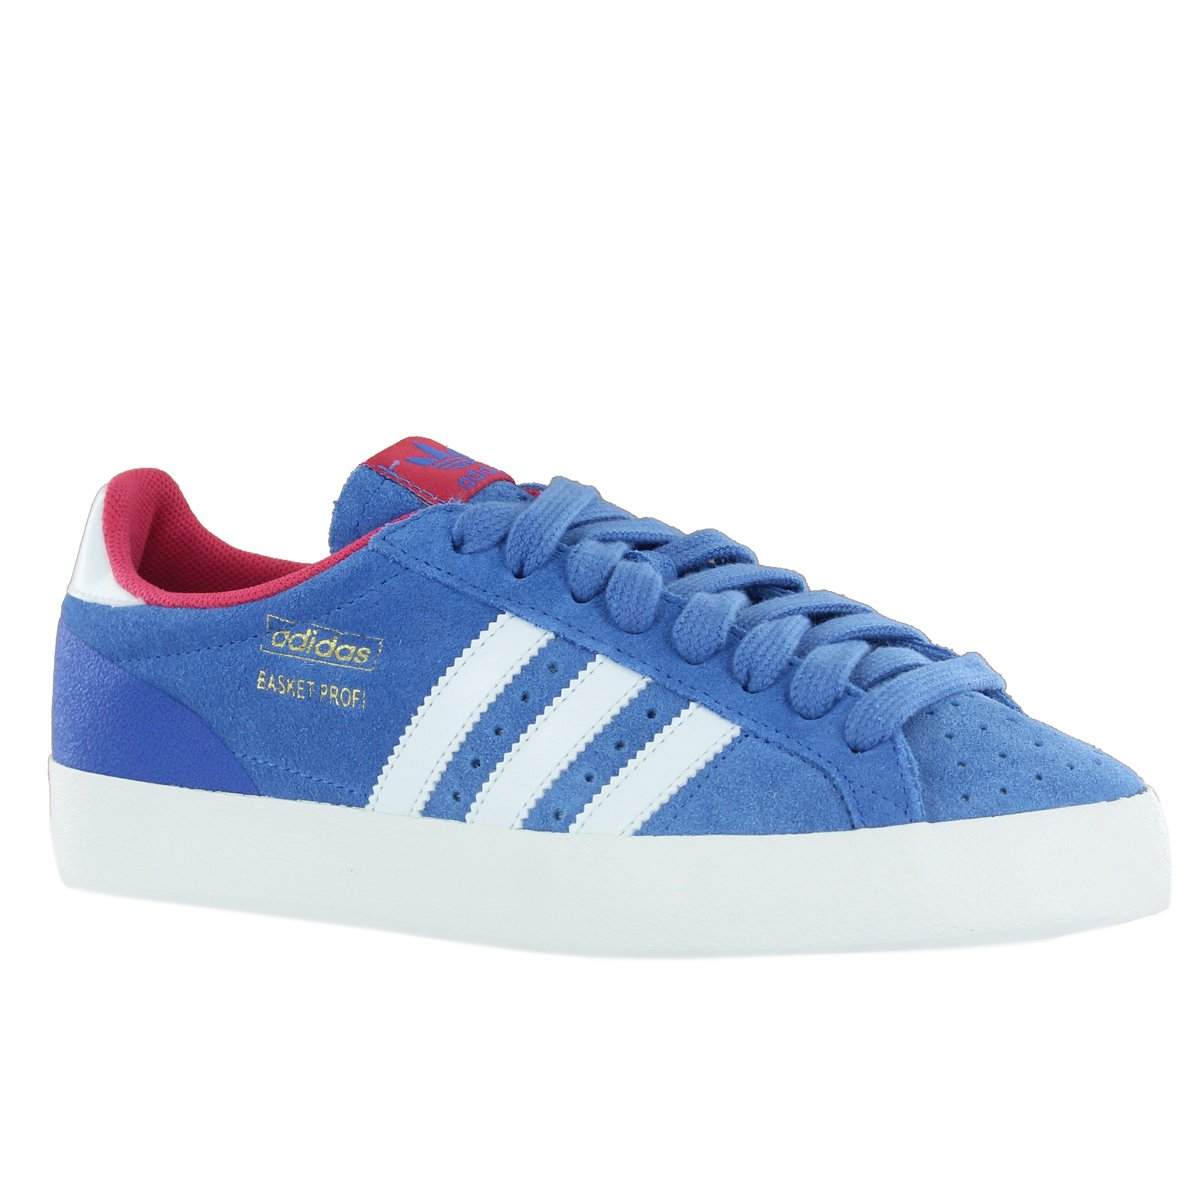 on sale 1ad9b fe353 Adidas Basket Profi Lo Blue White Womens Trainers Size 7 UK Amazon.co.uk  Shoes  Bags